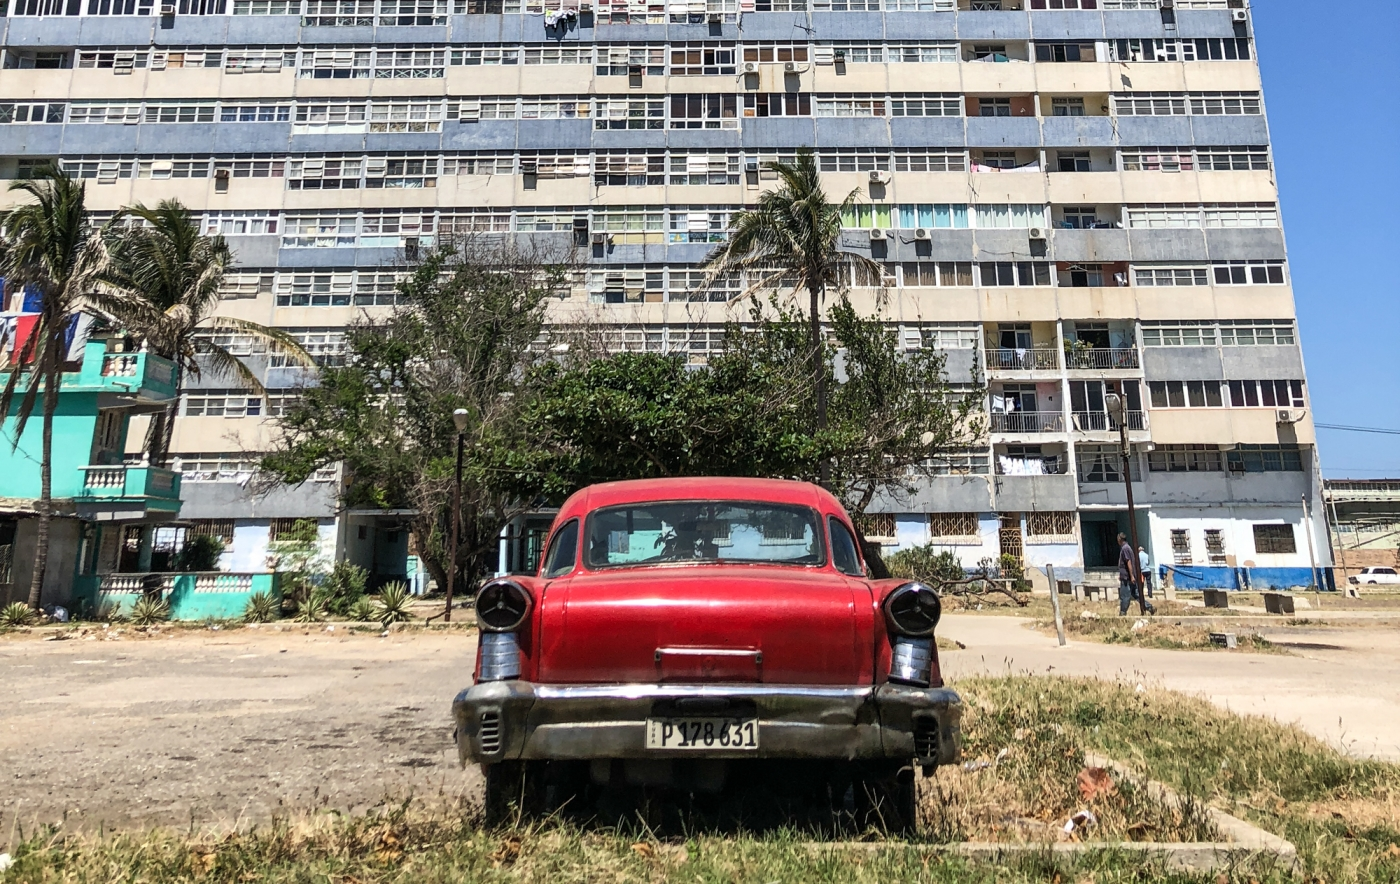 Cruise control | Behind the wheel in Cuba